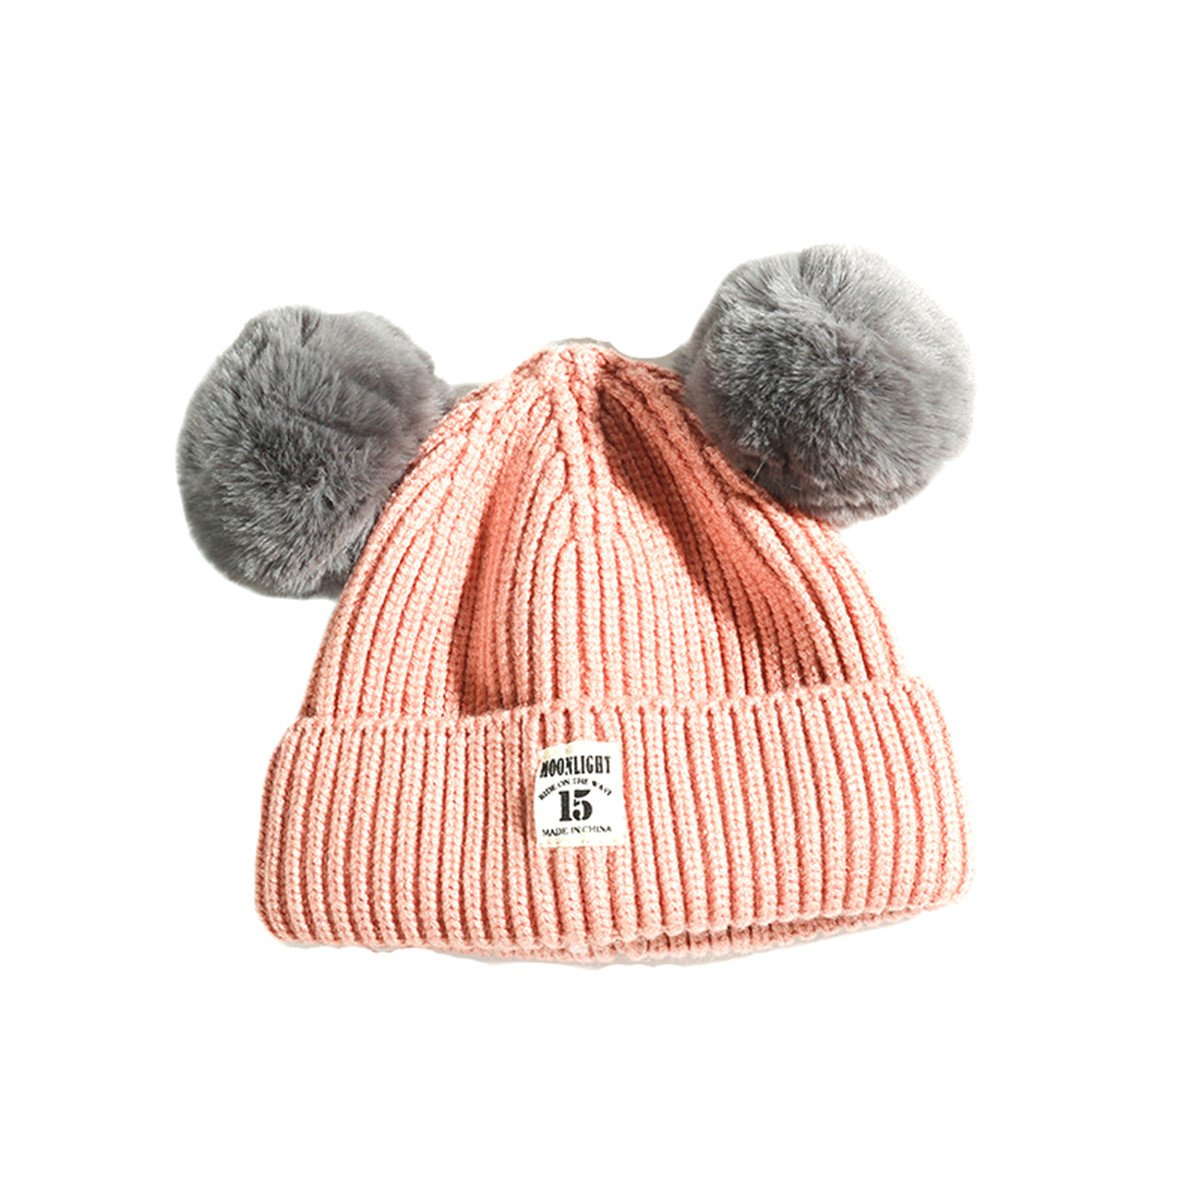 6d7ab236f0e Amazon.com  Fashion Winter Warm Cute Fur Ball Ears Knitted Toddler Beanie  Hat for Baby Boys Girls  Clothing